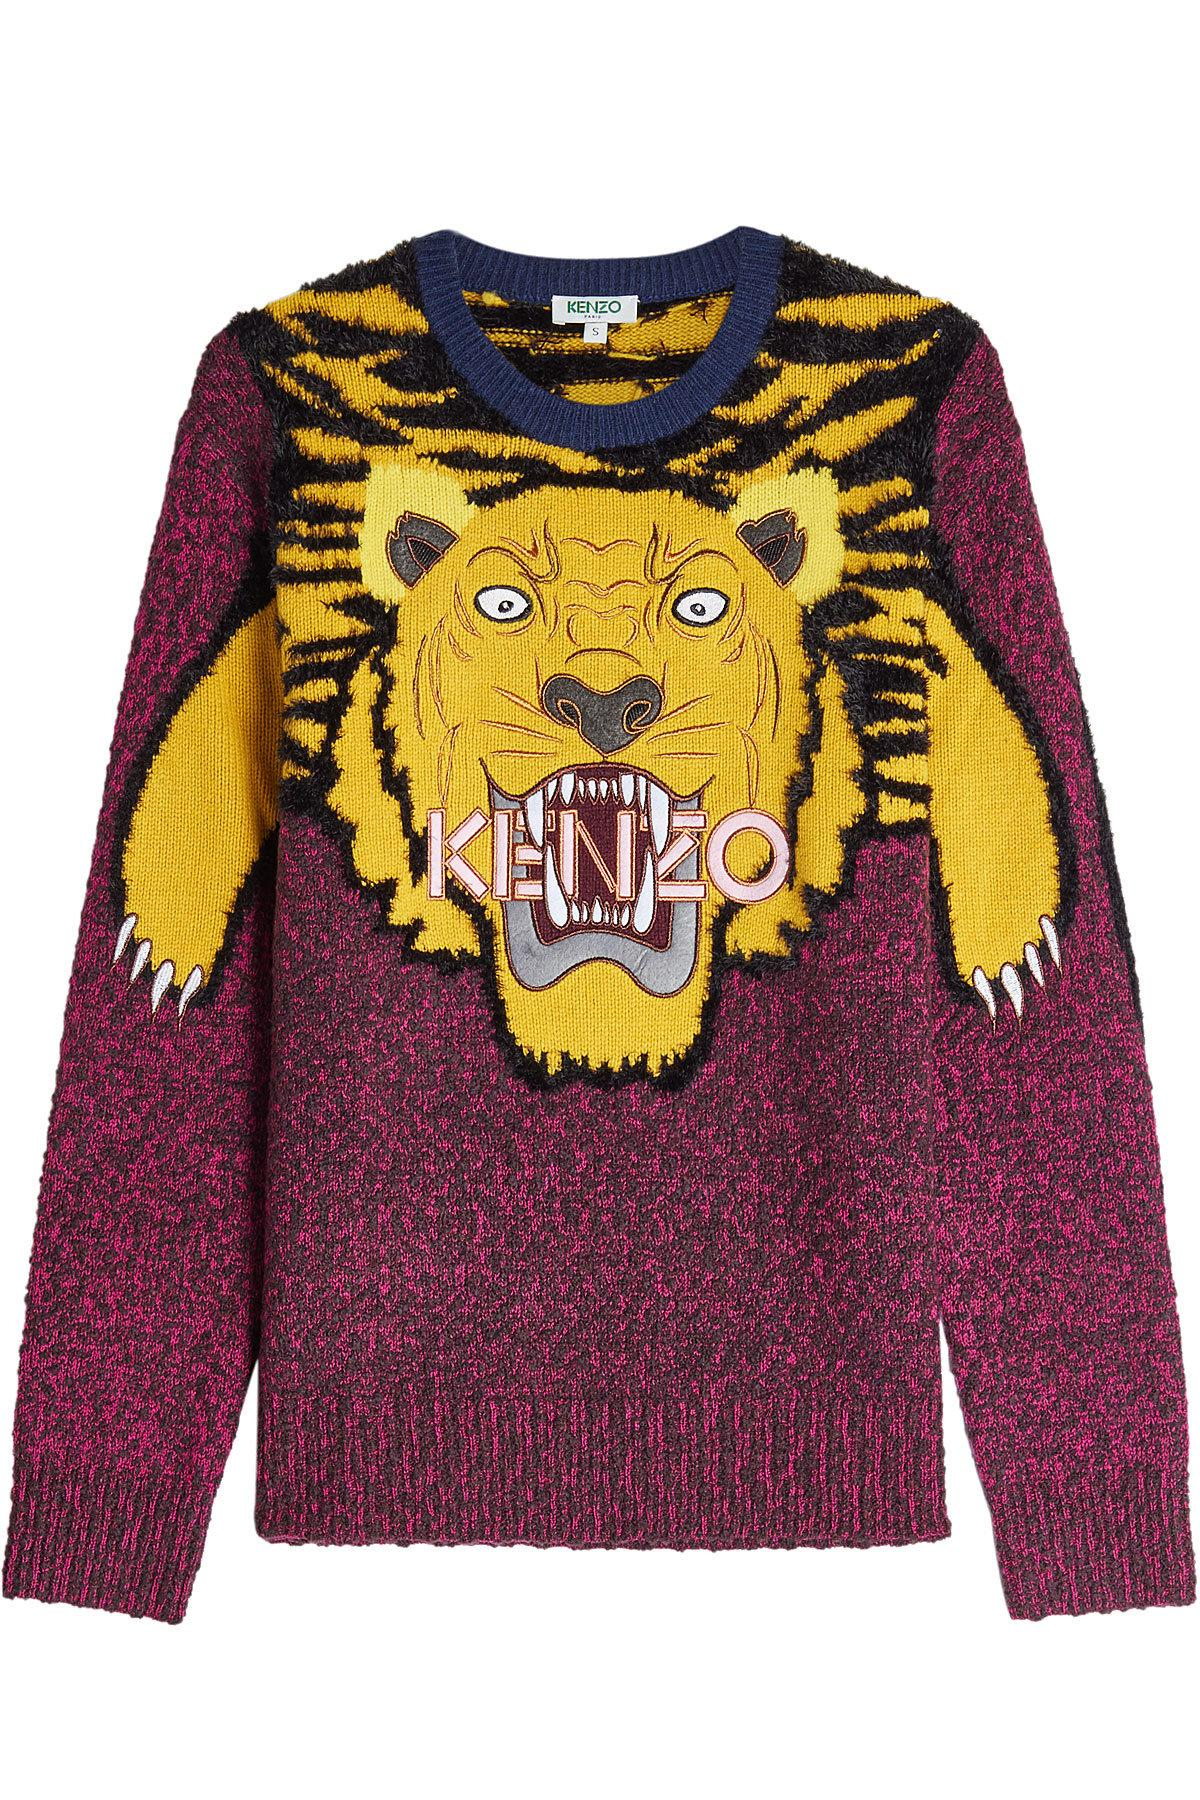 Kenzo Embroidered Wool Pullover In Multicolored